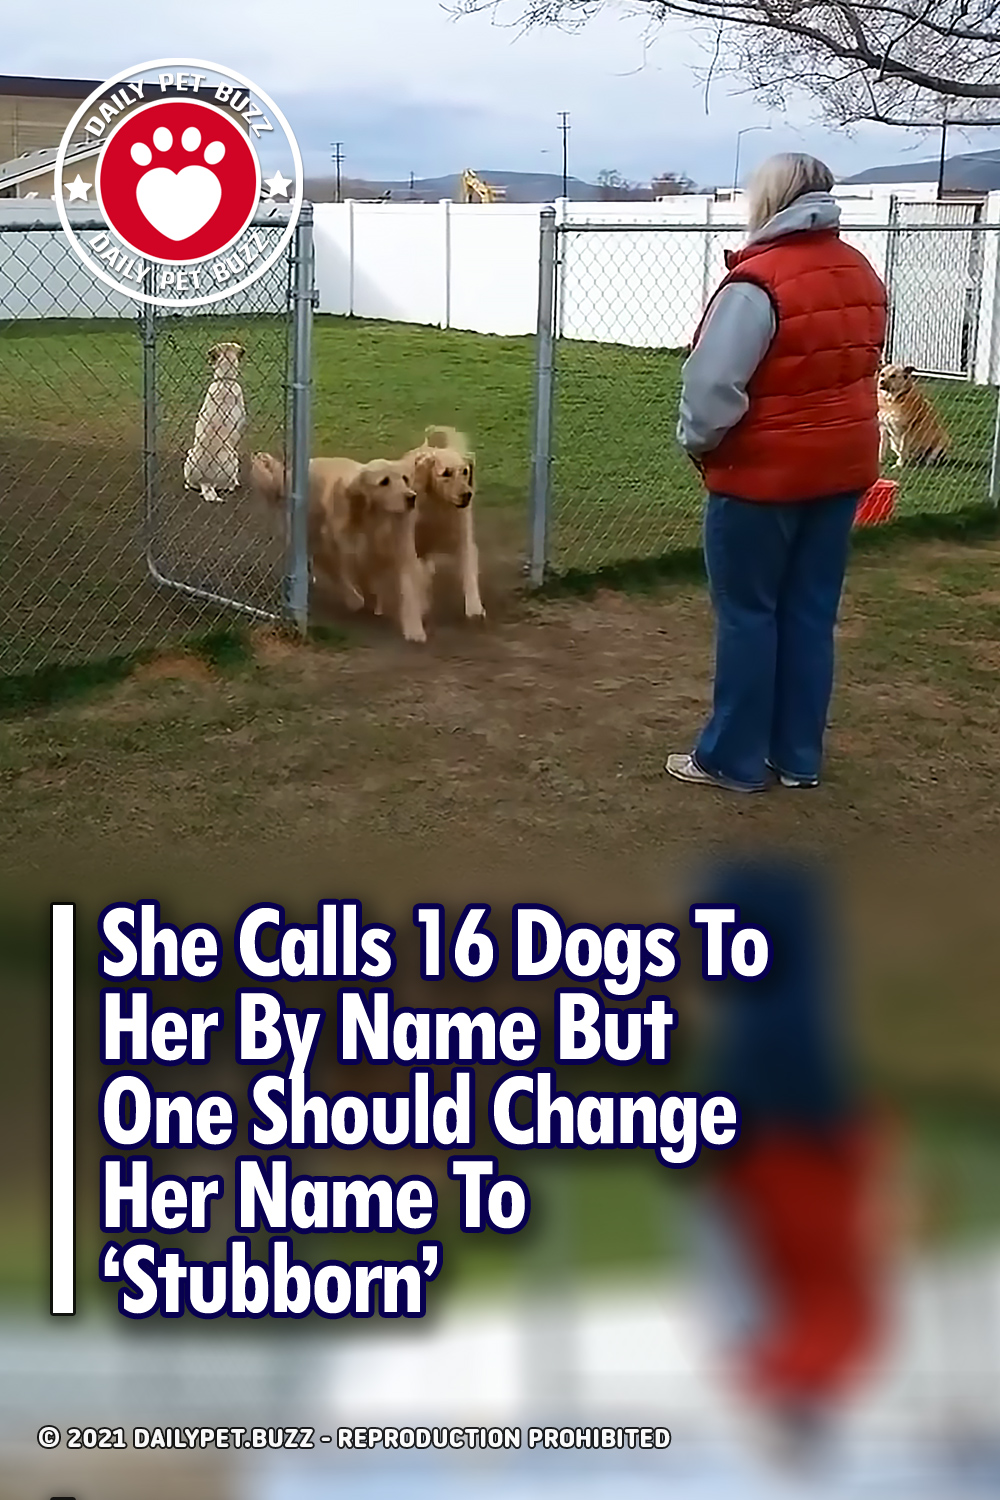 She Calls 16 Dogs To Her By Name But One Should Change Her Name To \'Stubborn\'